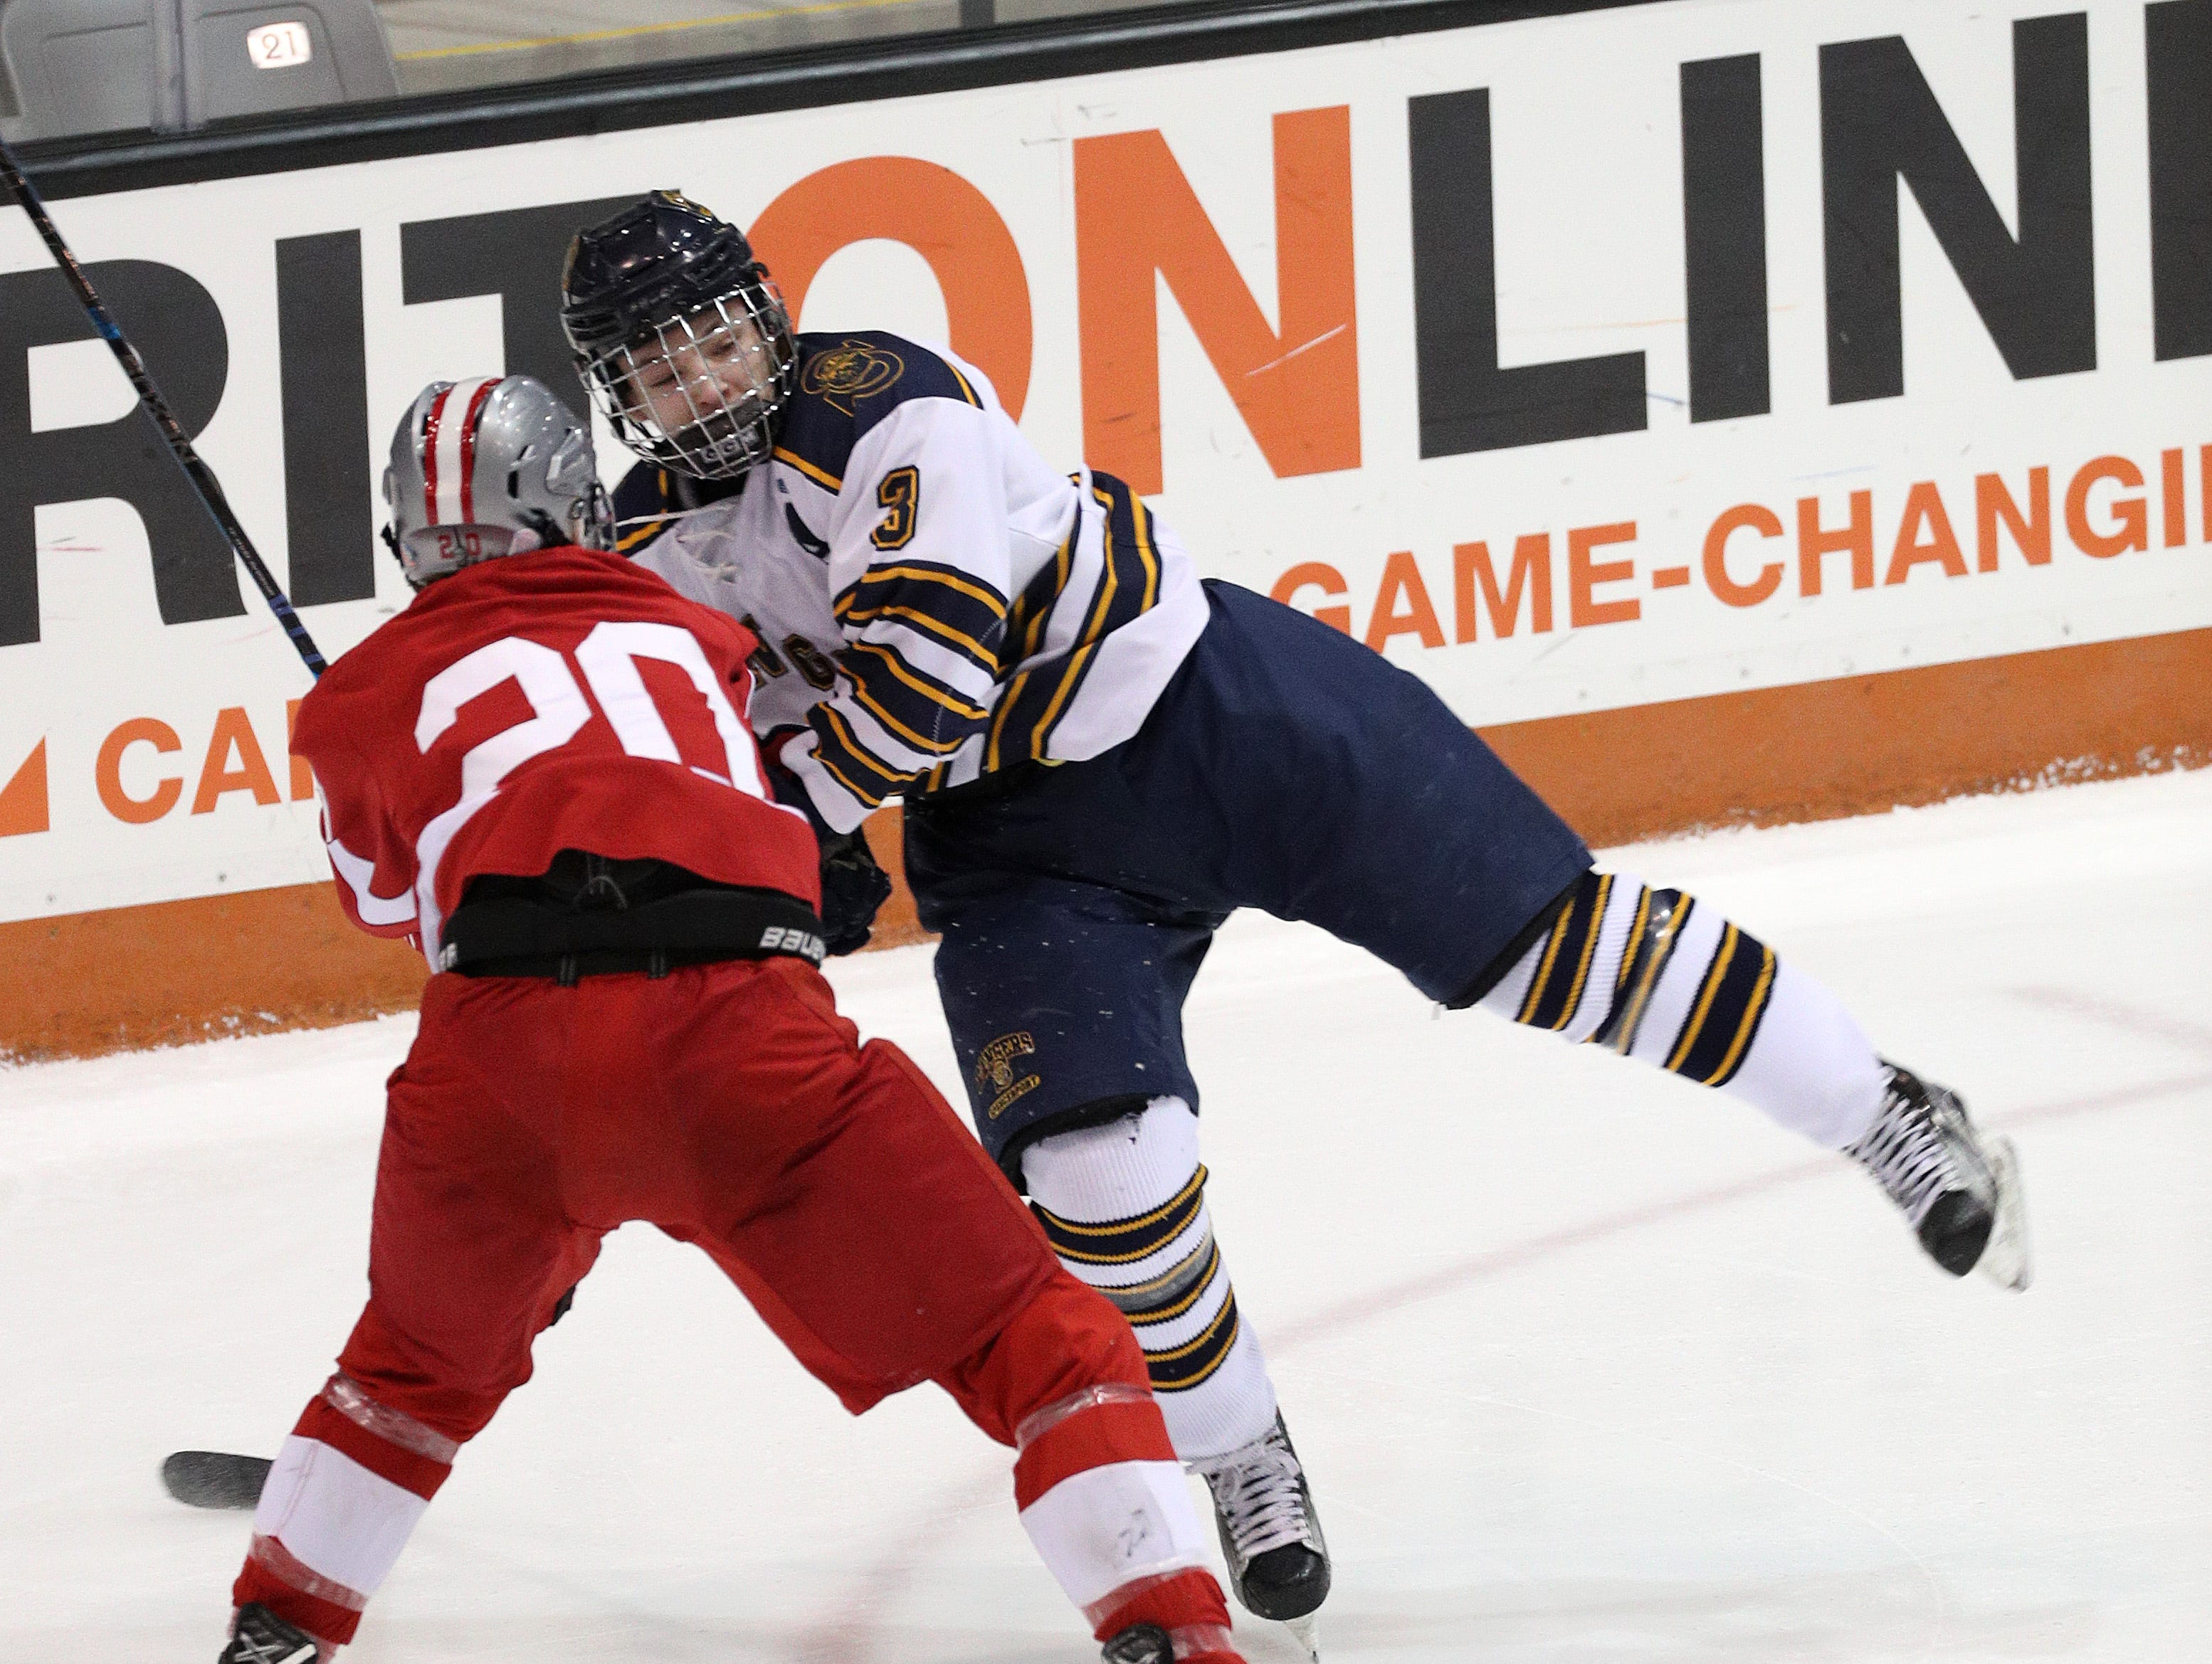 Spencerport's Luc Fedele is checked by Canandaigua's Ryan Pitka.